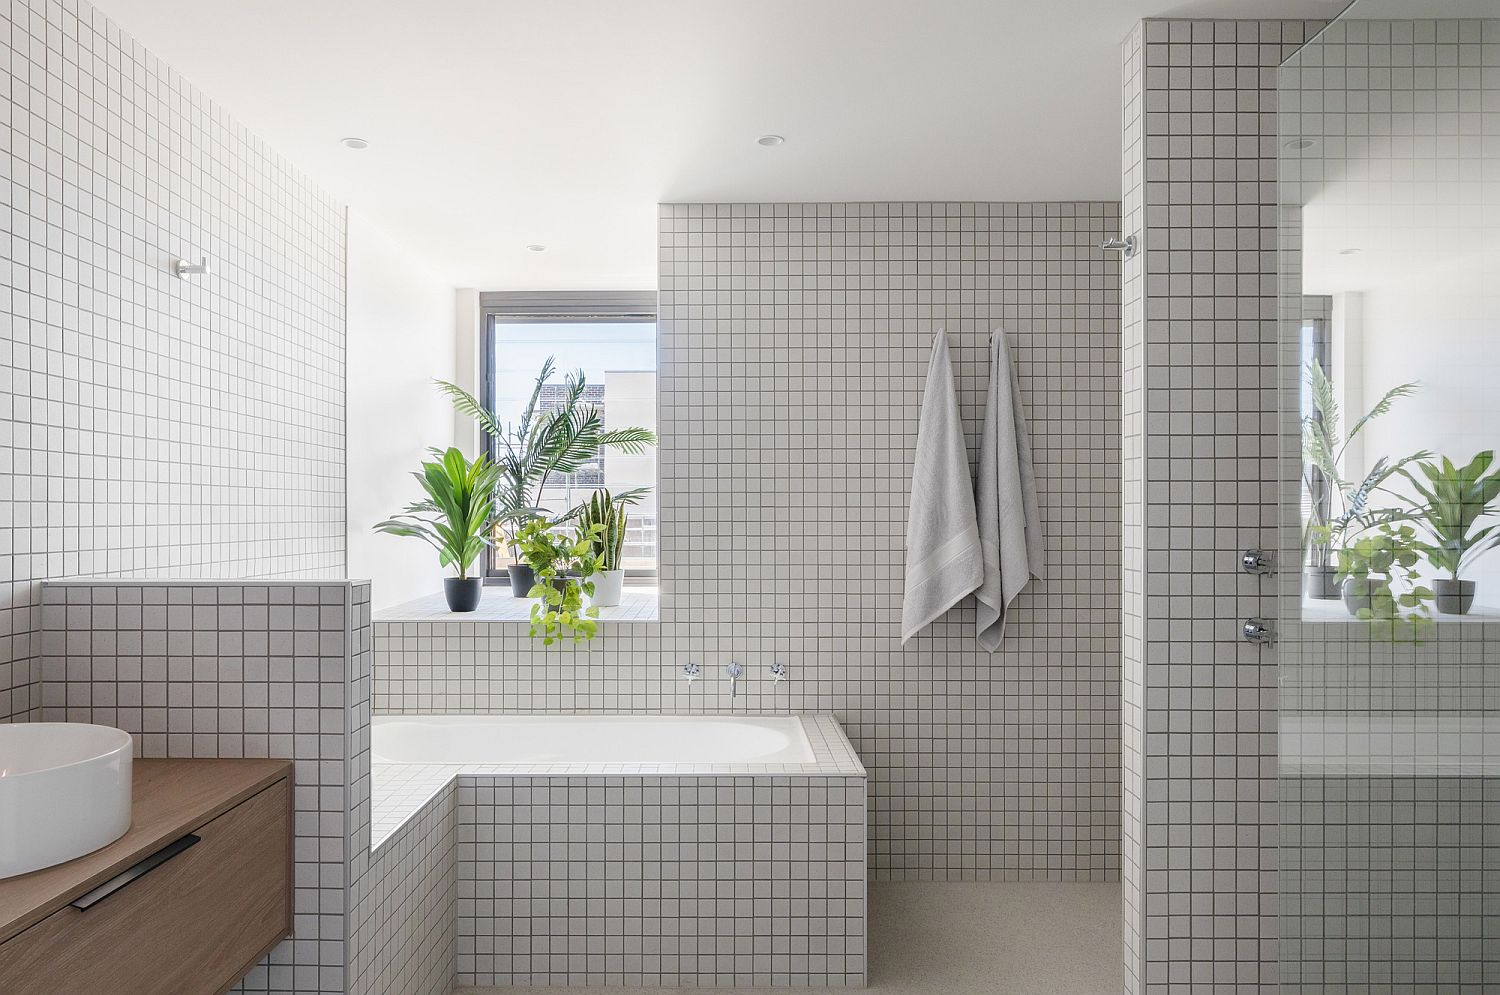 Small tiles in white give the bathroom a more classic appeal